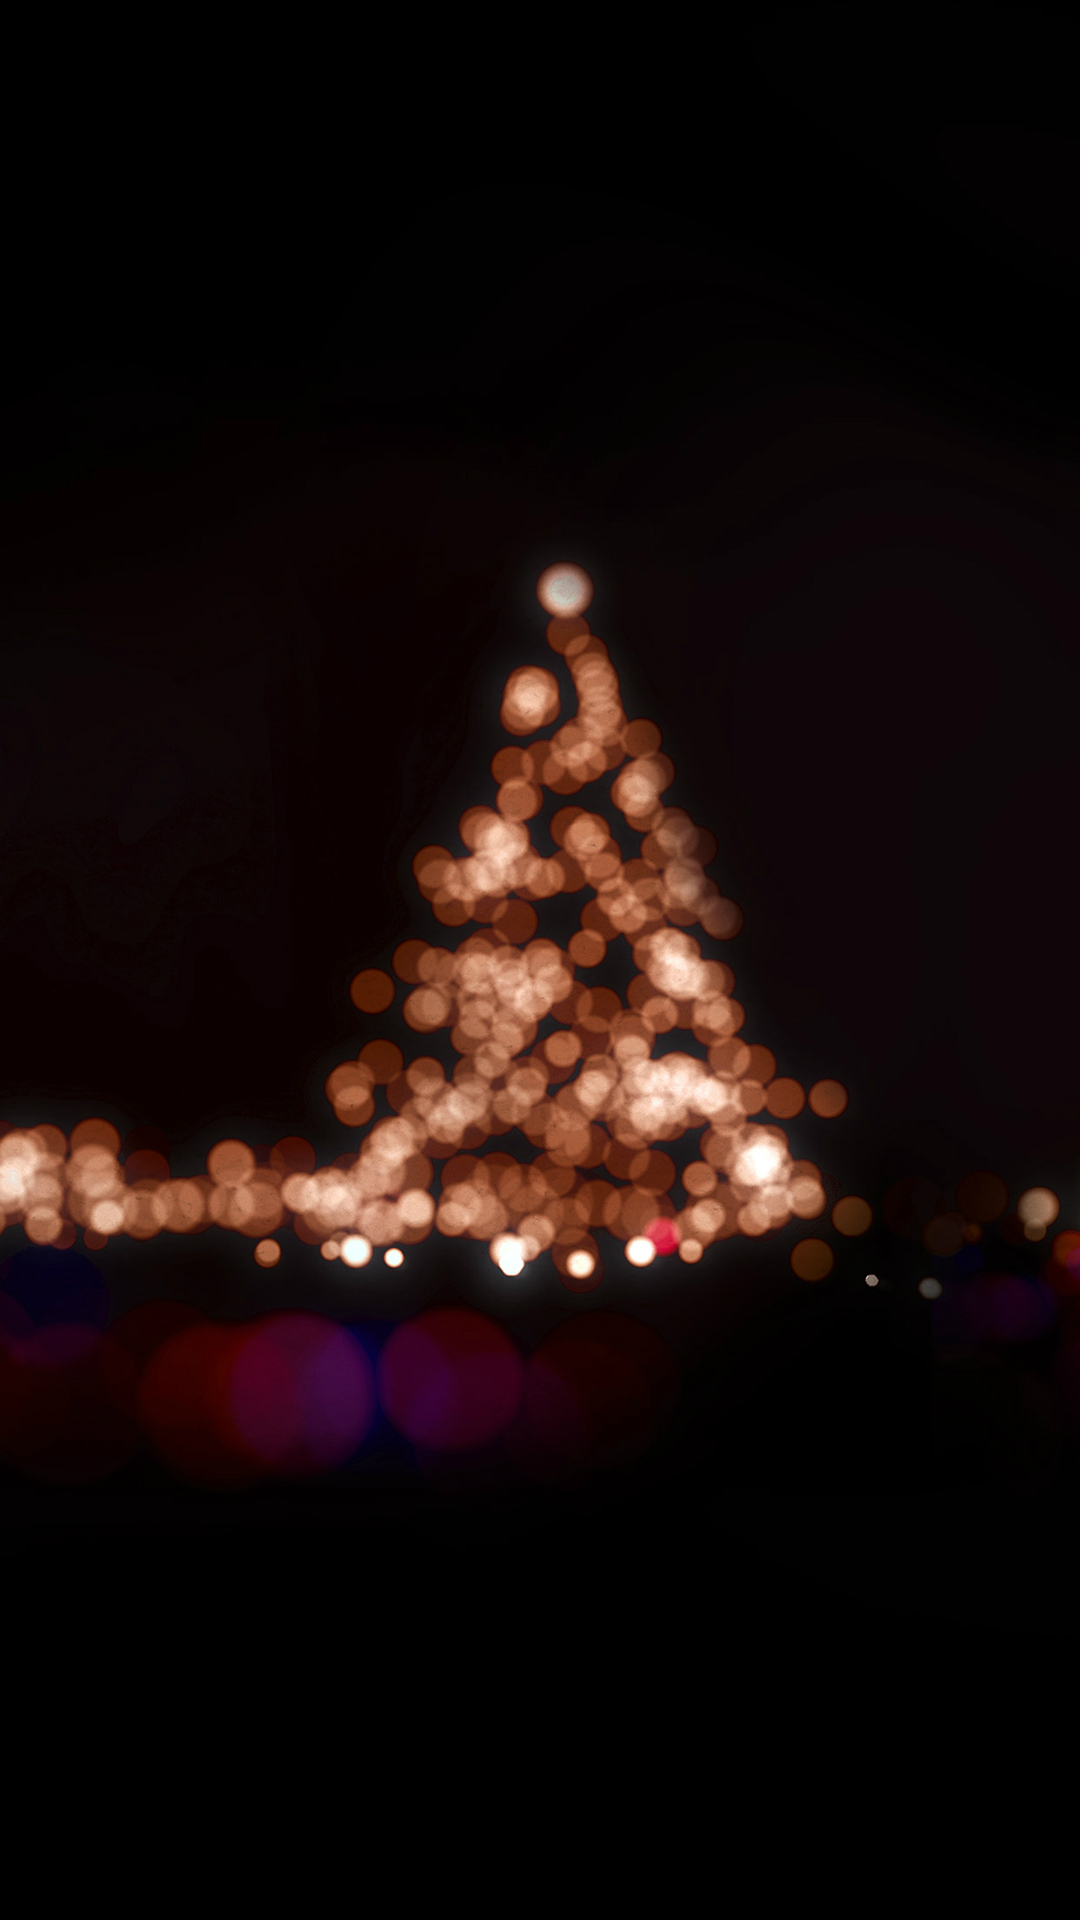 Aesthetic Christmas Iphone Wallpapers Top Free Aesthetic Christmas Iphone Backgrounds Wallpaperaccess